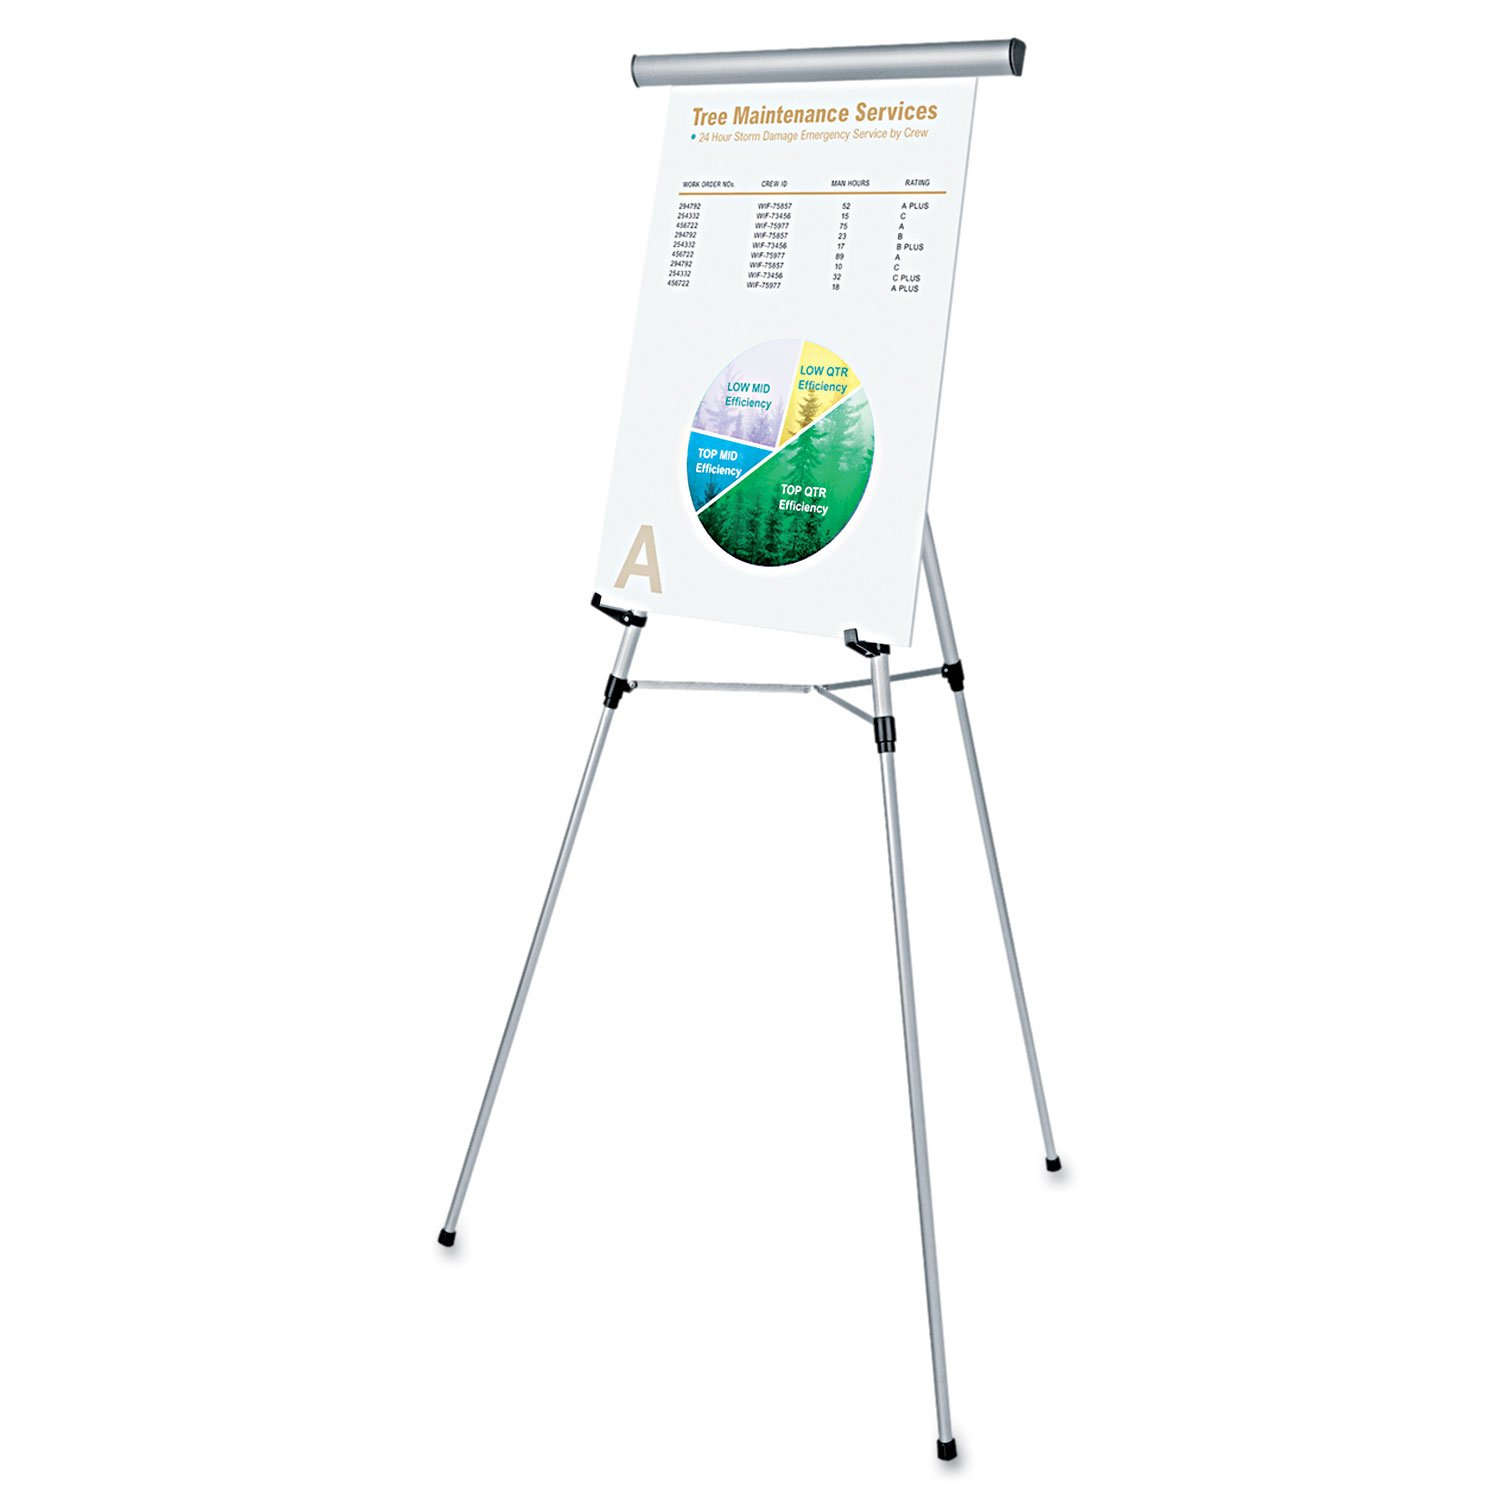 Universal 43050 3-Leg Telescoping Easel with Pad Retainer, Adjusts 34'' to 64'', Aluminum, Silver